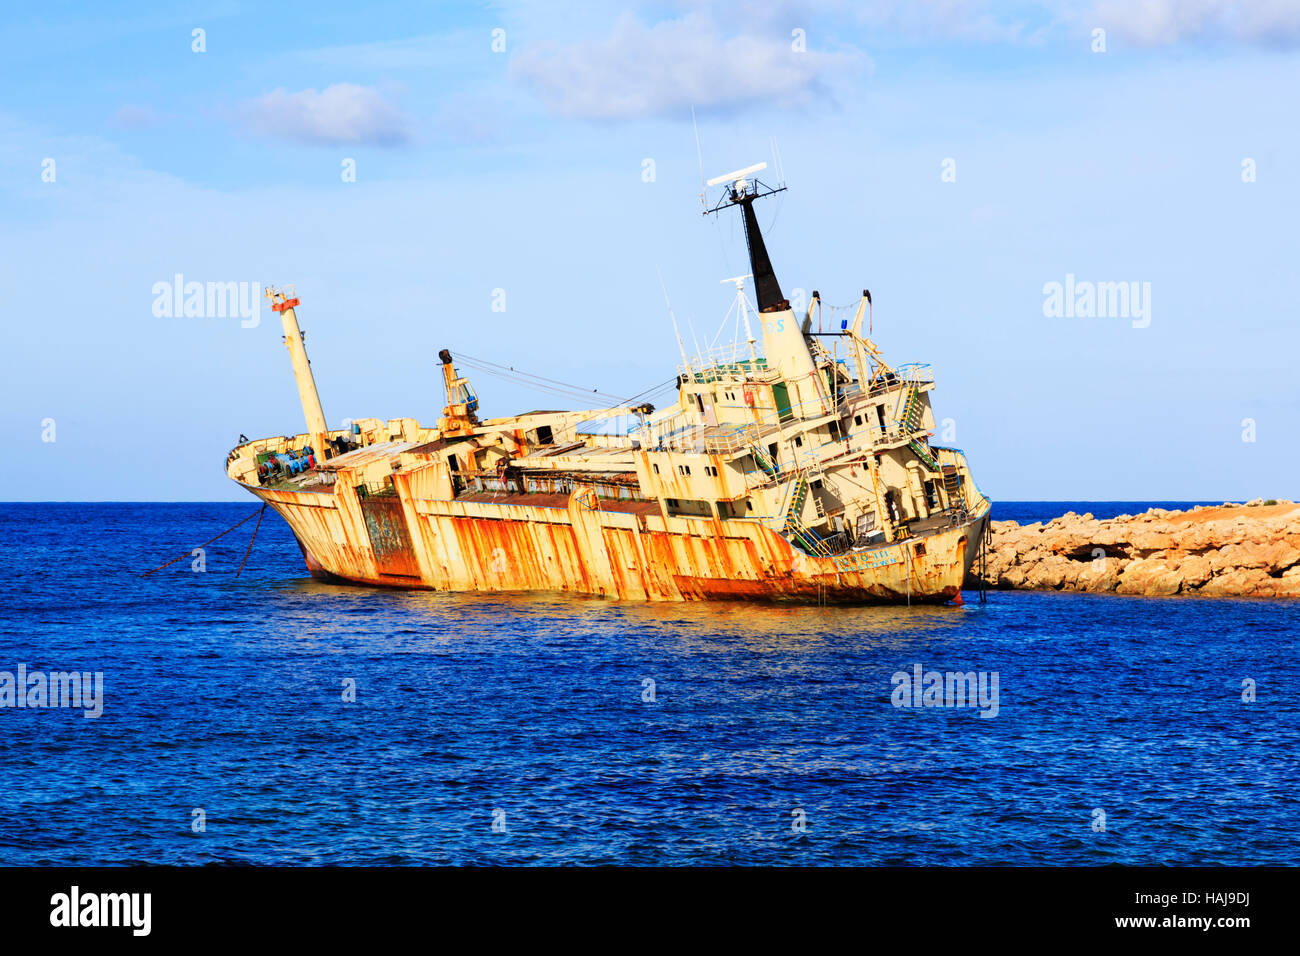 Wreck of the Edro III off Seacaves, Paphos, Cyprus - Stock Image